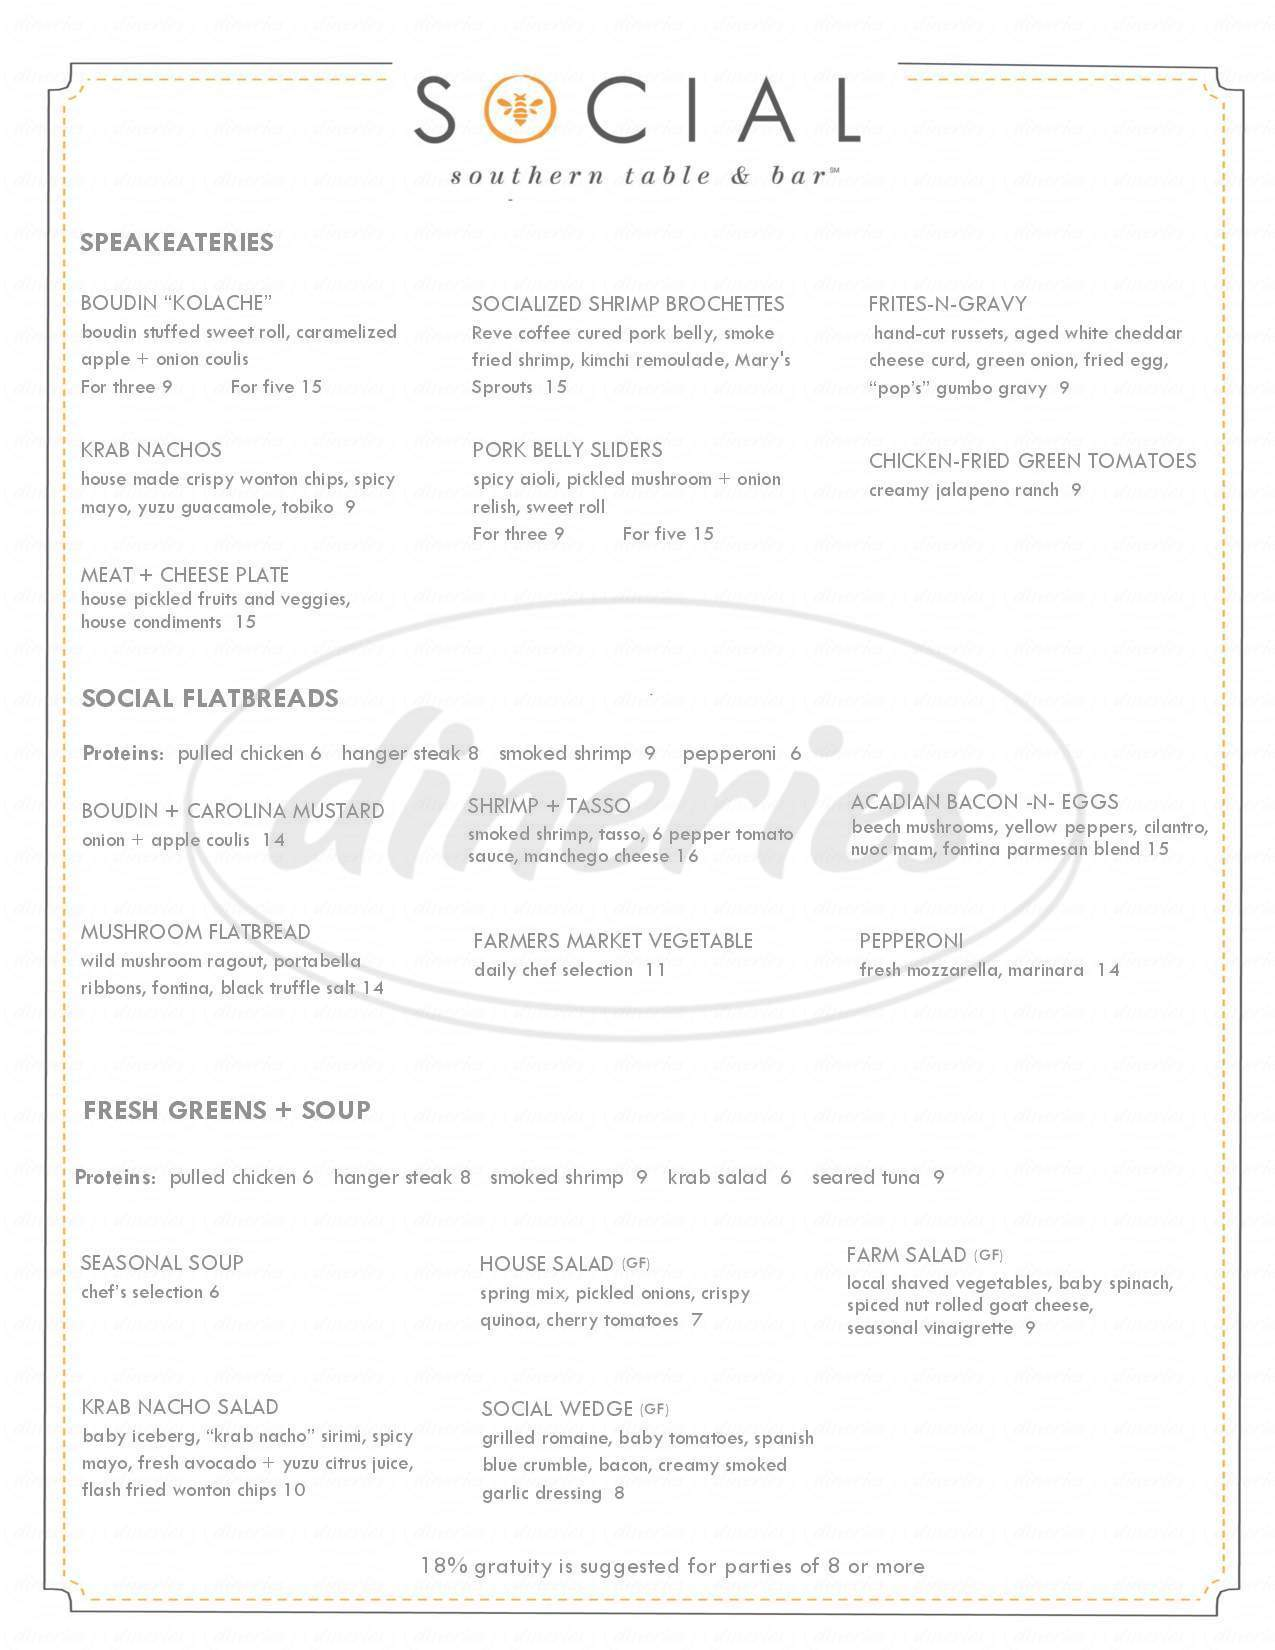 menu for Social Southern Table & Bar